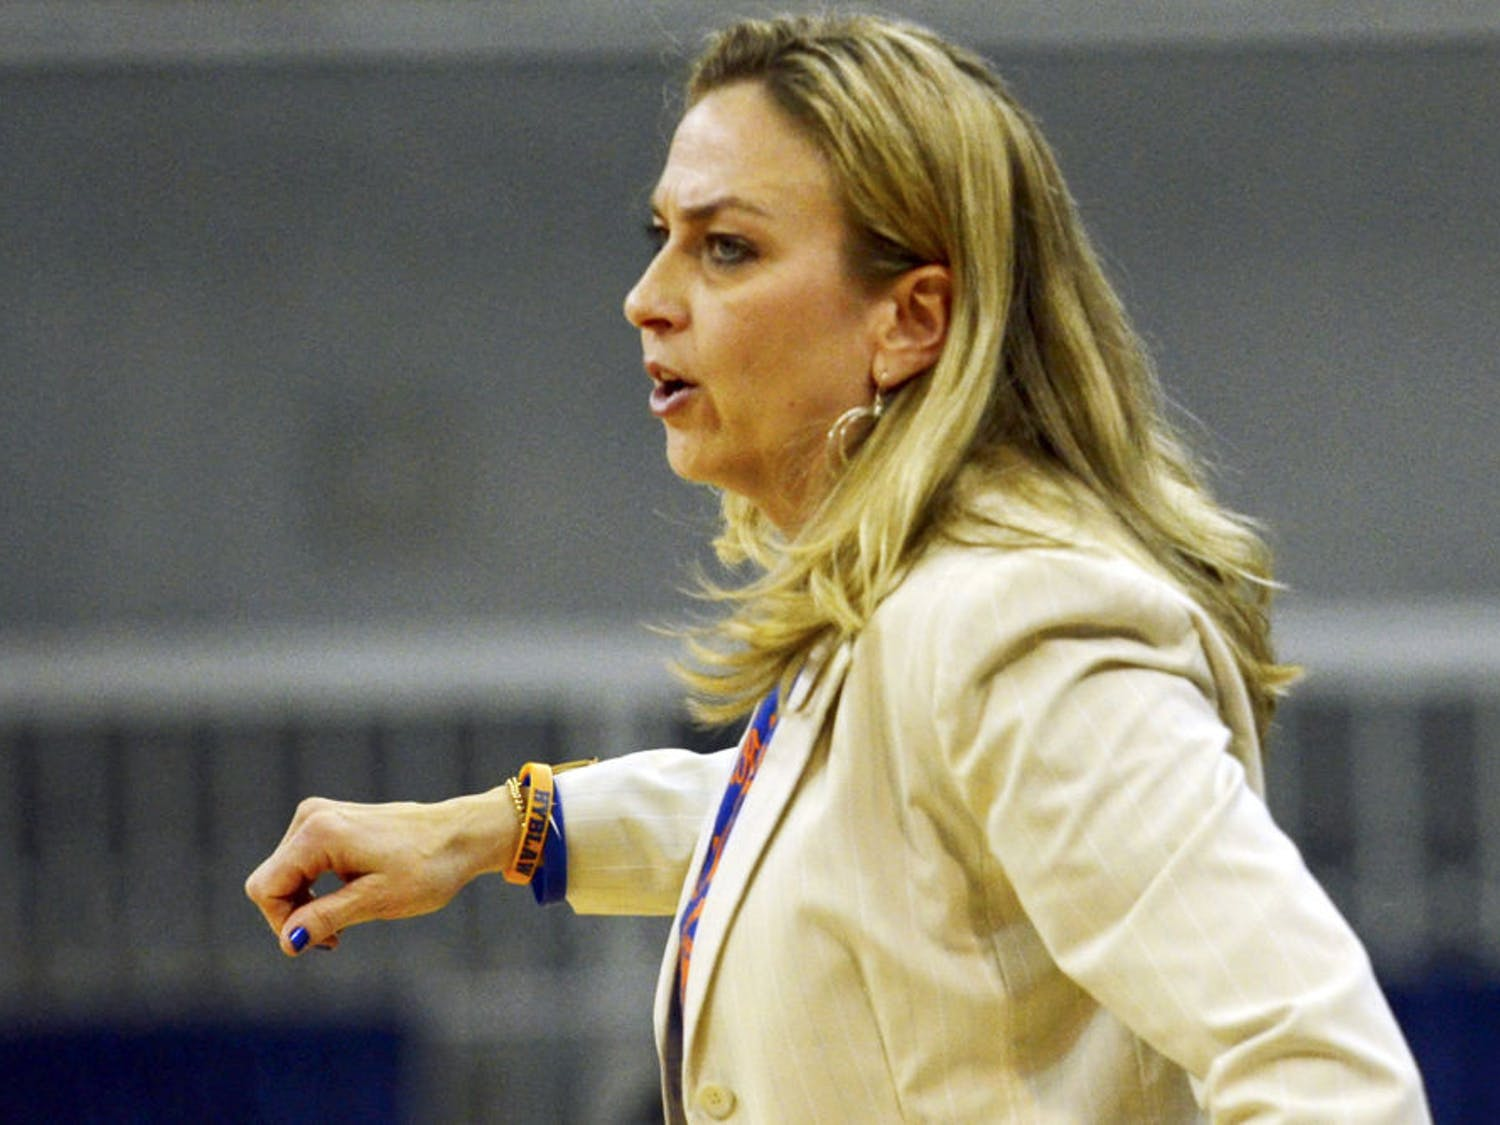 Amanda Butler calls out a play during Florida's 64-56 loss to No. 6 Tennessee on Feb. 8 in the O'Connell Center.